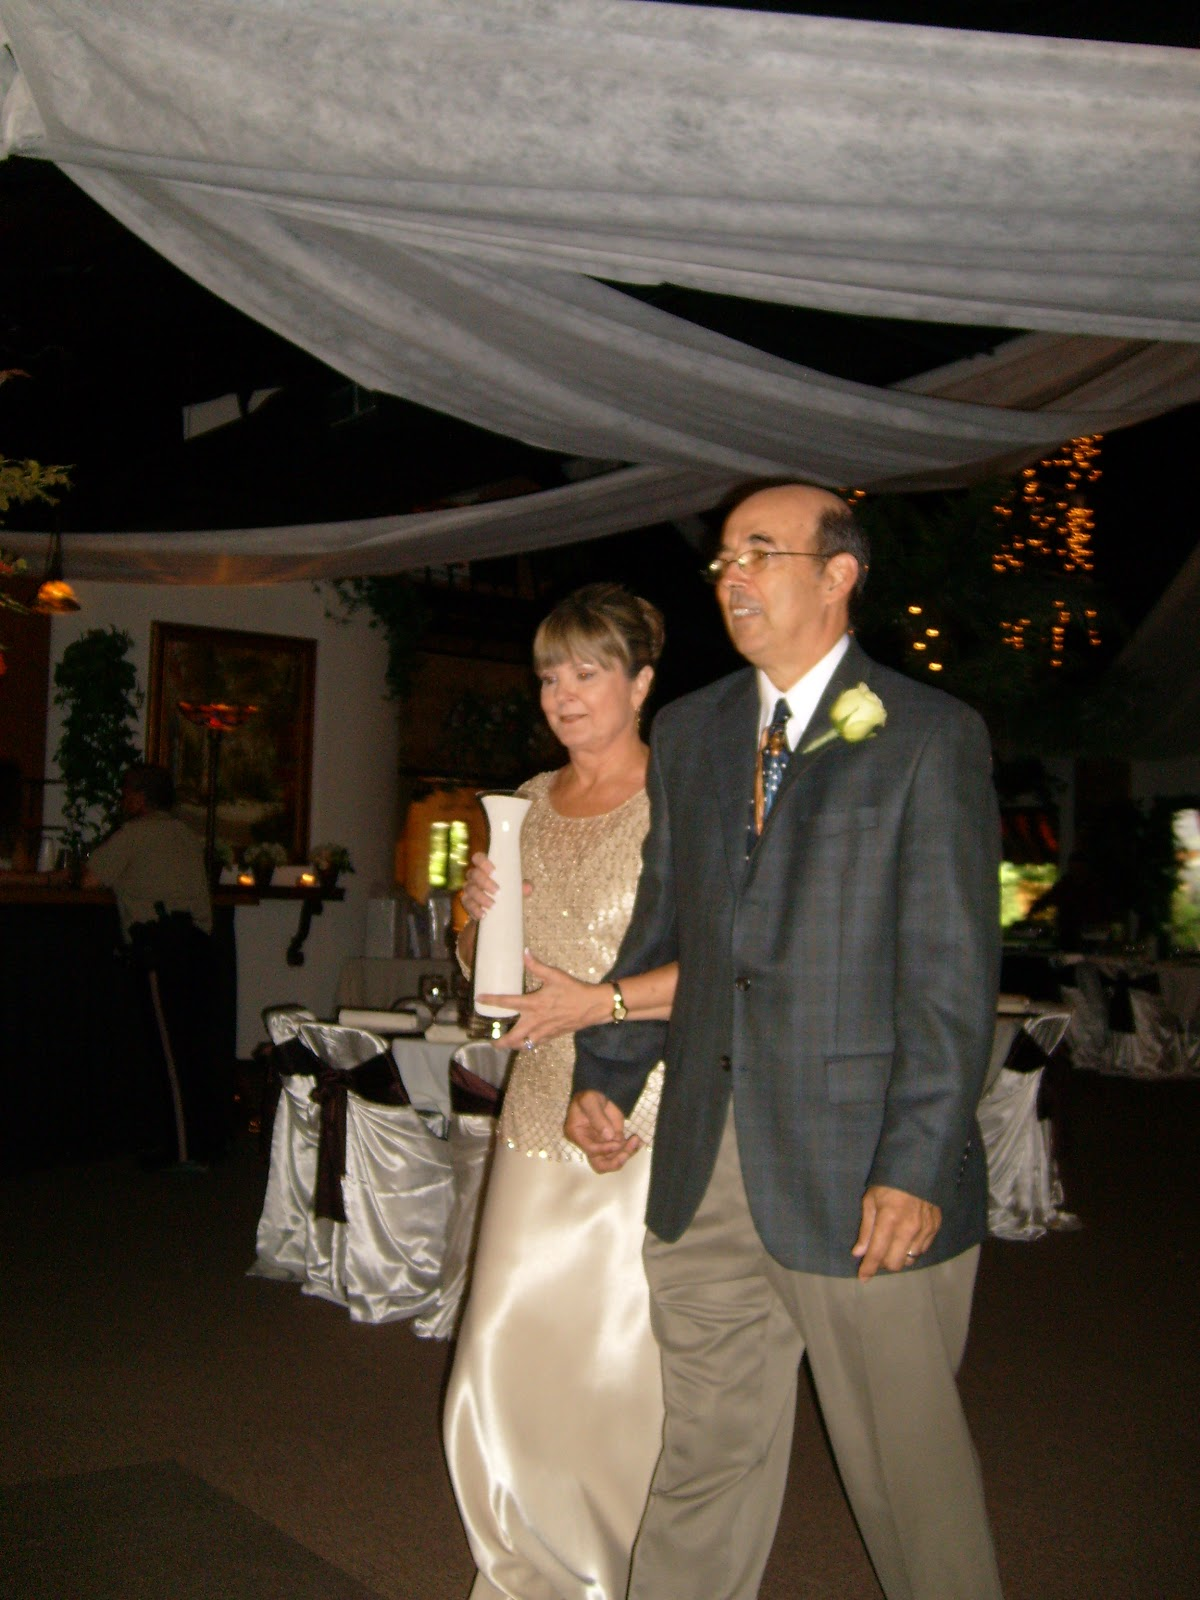 Beths Wedding - S7300147.JPG